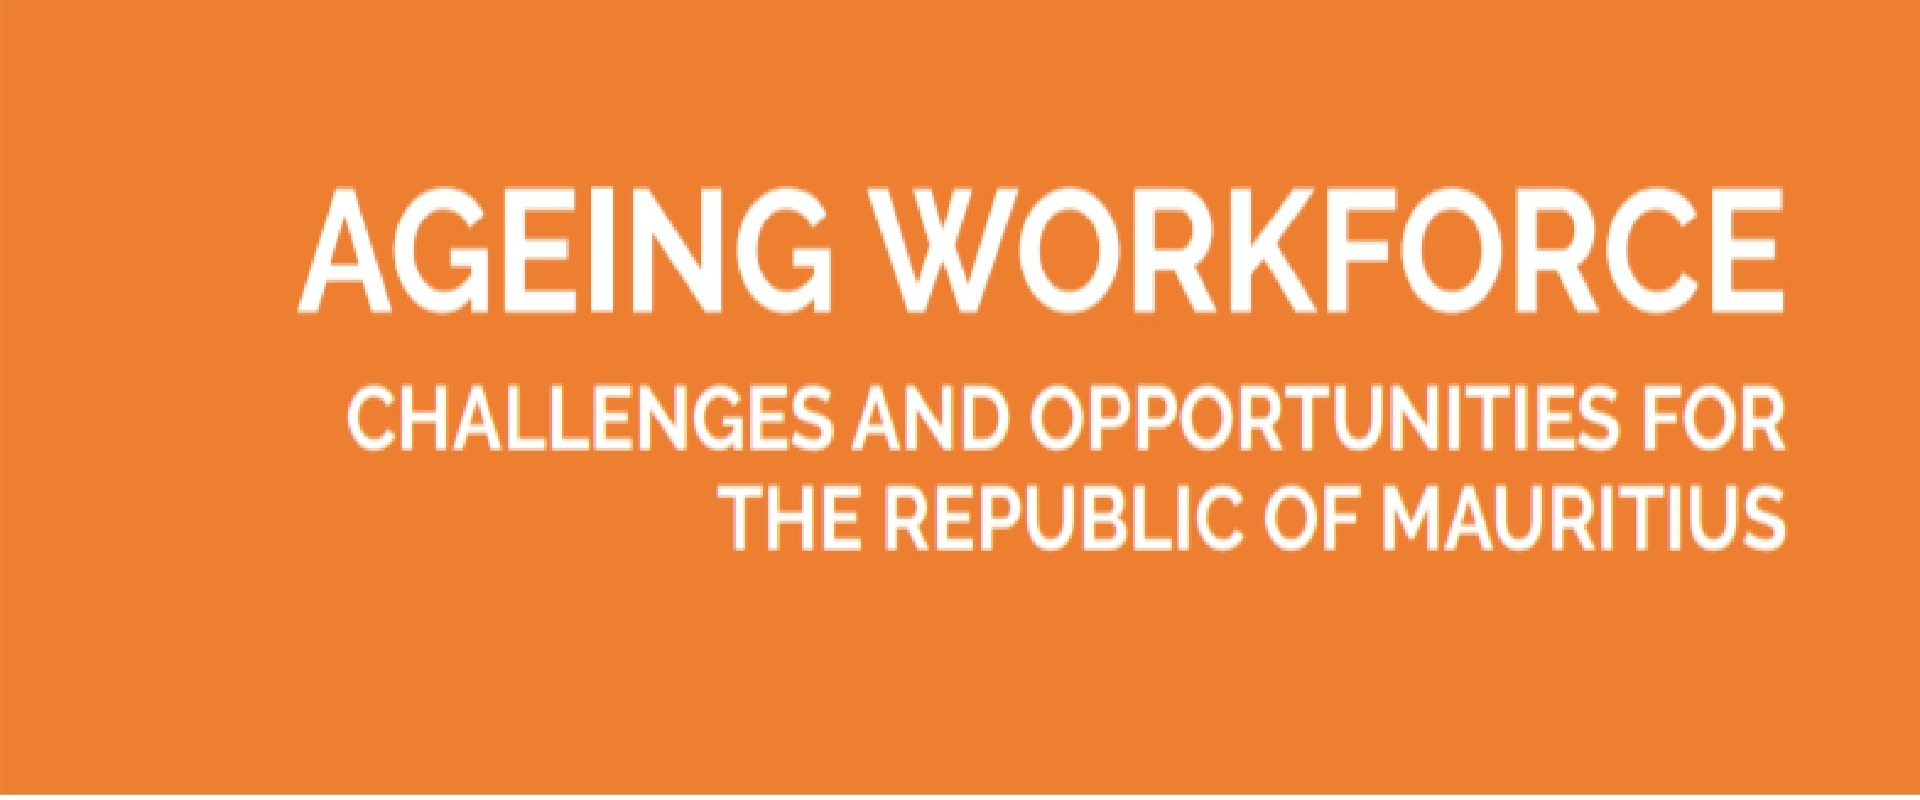 Ageing Workforce: Challenges and Opportunities for the Republic of Mauritius